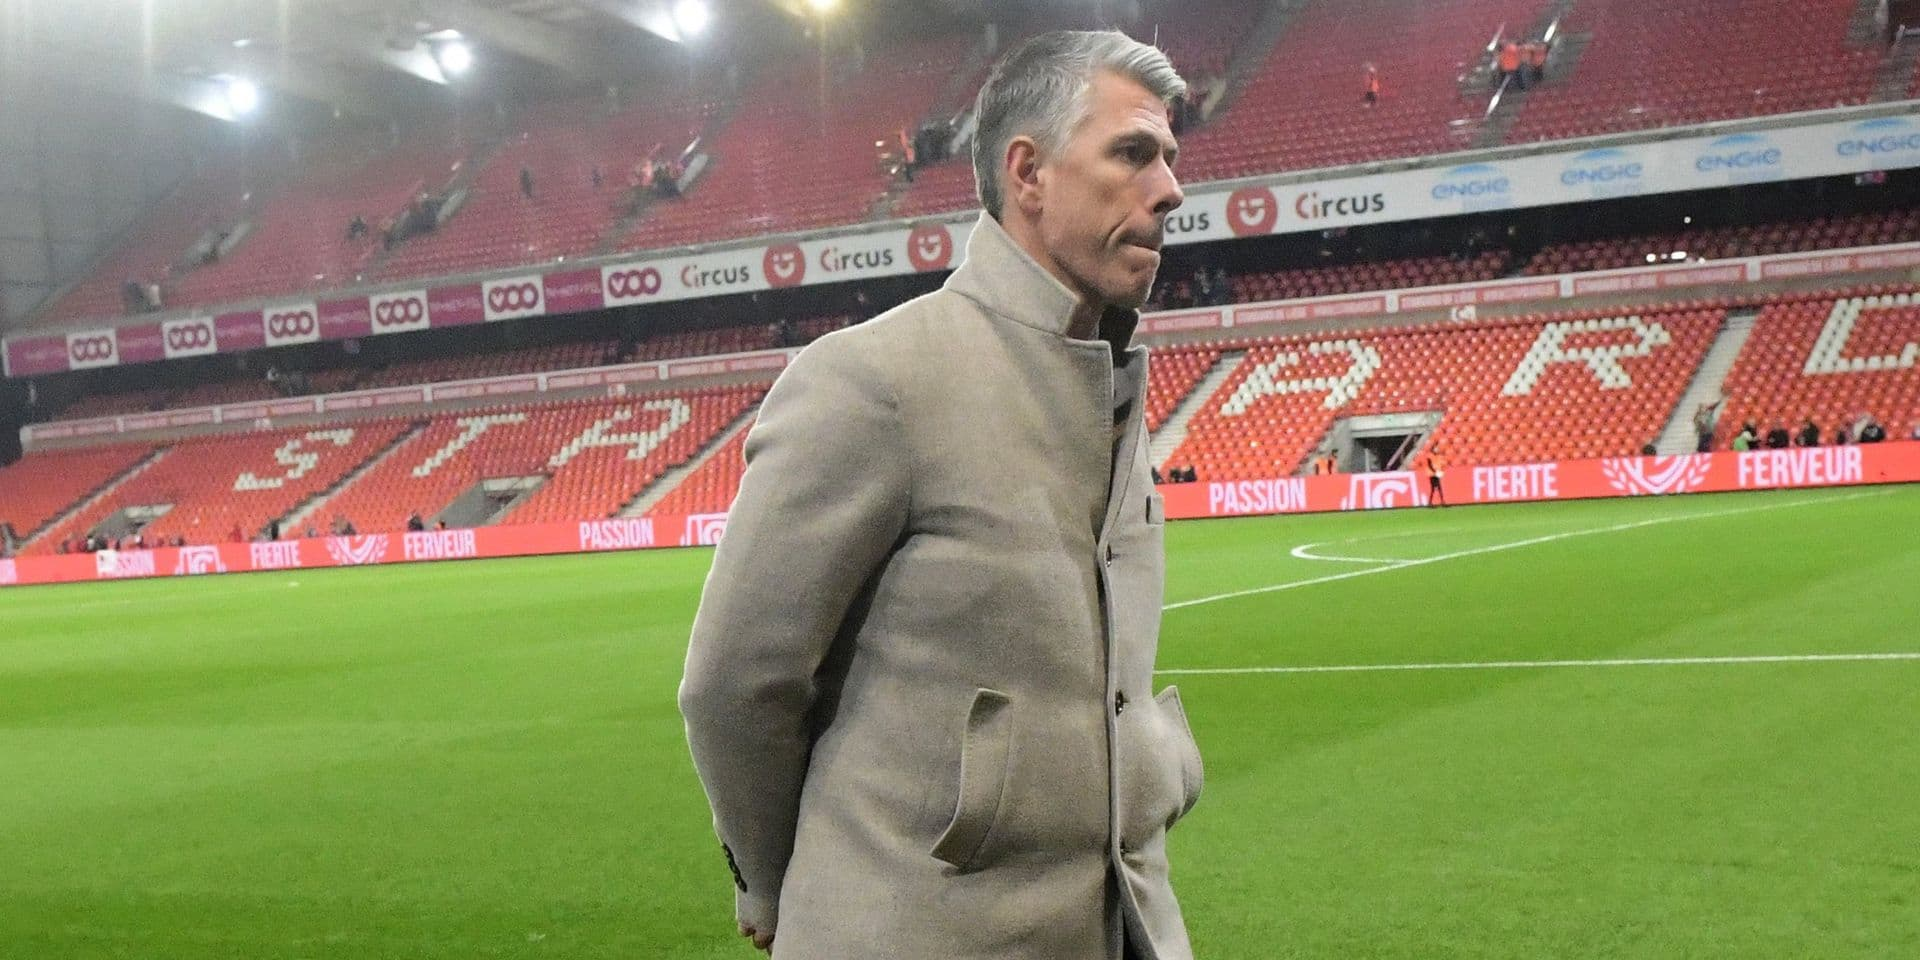 LIEGE, BELGIUM - APRIL 12 : Michael Verschueren looks dejected after the Jupiler Pro League play off 1 match between Standard de Liege and RSC Anderlecht on April 12, 2019 in Liege, Belgium, 12/04/2019 ( Photo by Peter De Voecht Photonews